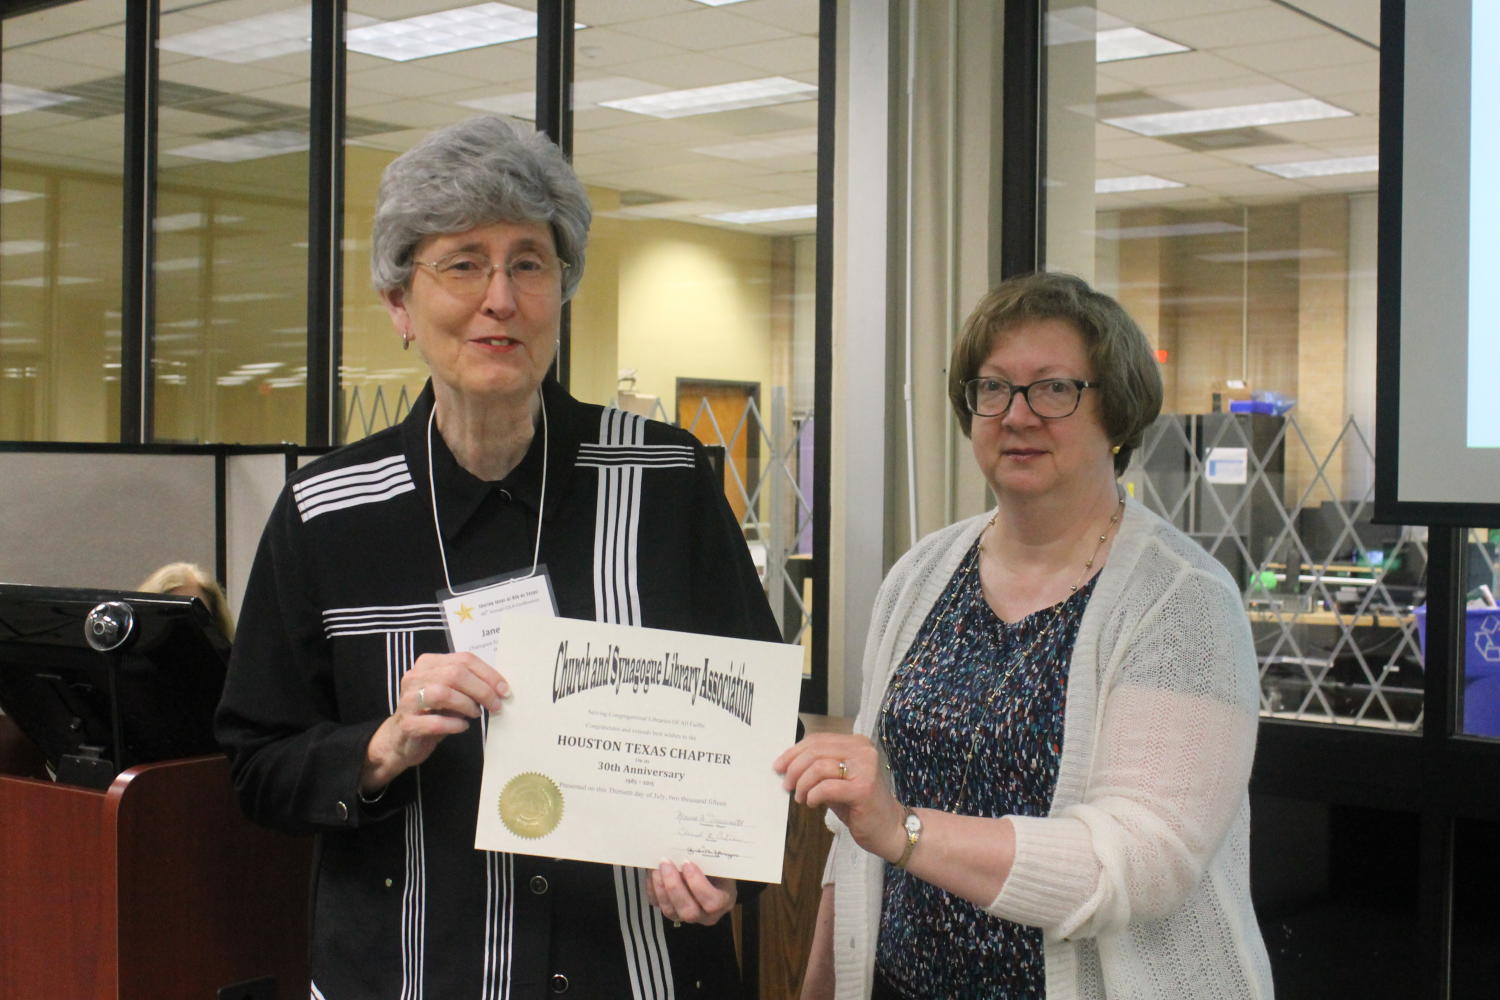 [Jane Hope accepting certificate for Houston Texas Chapter], Photograph of Jane Hope (left) accepting a certificate from Marcia Trauernicht (right). Trauernicht is congratulating the Houston Texas Chapter on their 30th anniversary which are being represented by Hope. The event took place during the 48th Church and Synagogue Library Association conference held at Willis Library at the University of North Texas in Denton, Texas.,